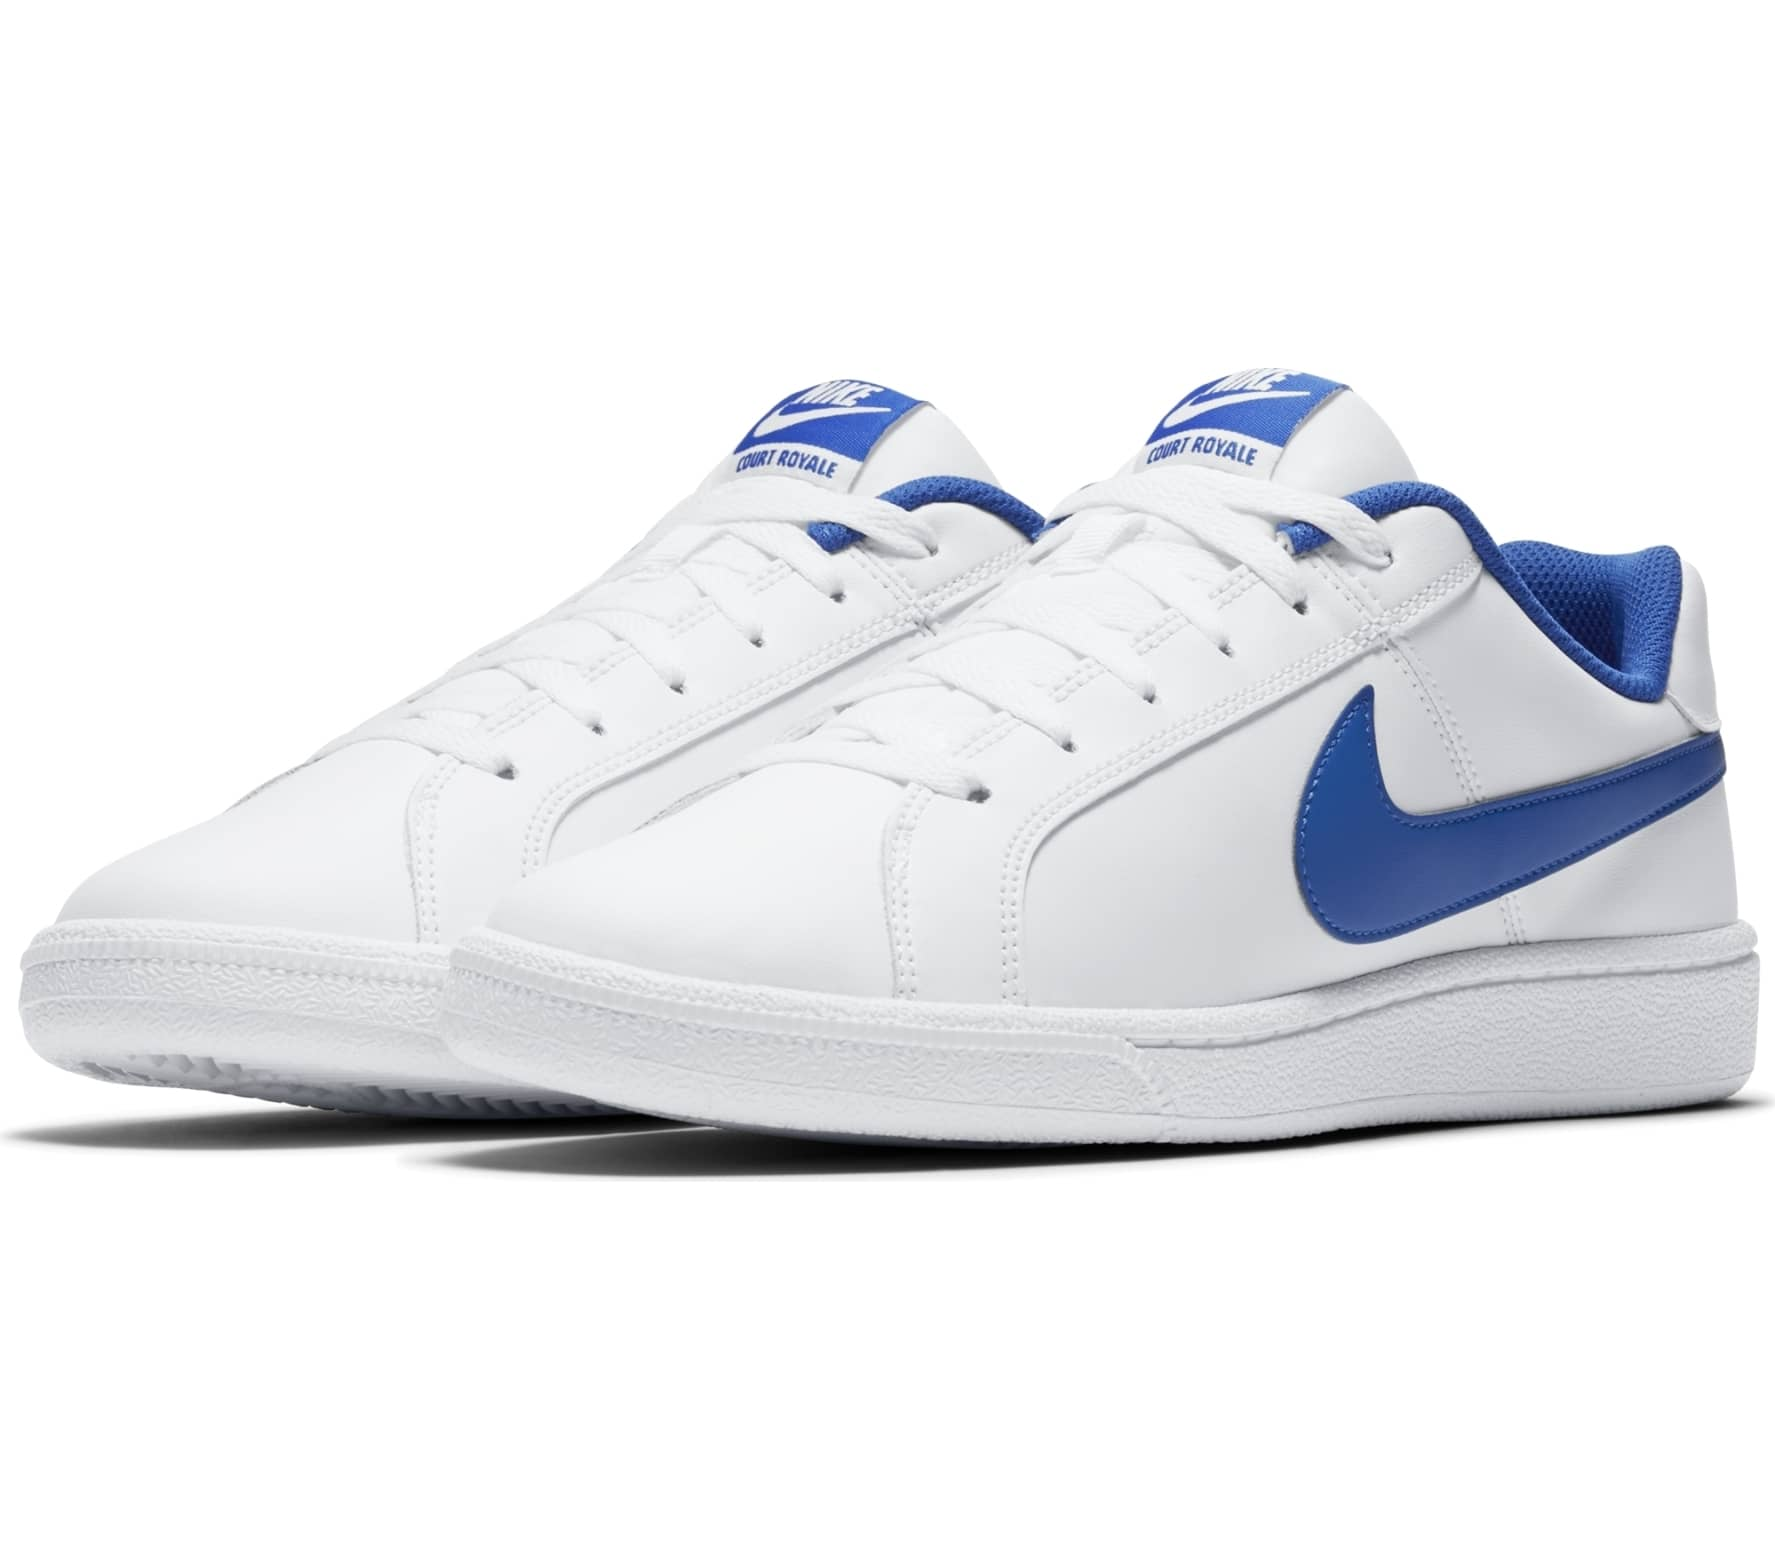 ff4ff0aaa3862b Nike - Court Royale men s sneaker (white blue) - buy it at the ...